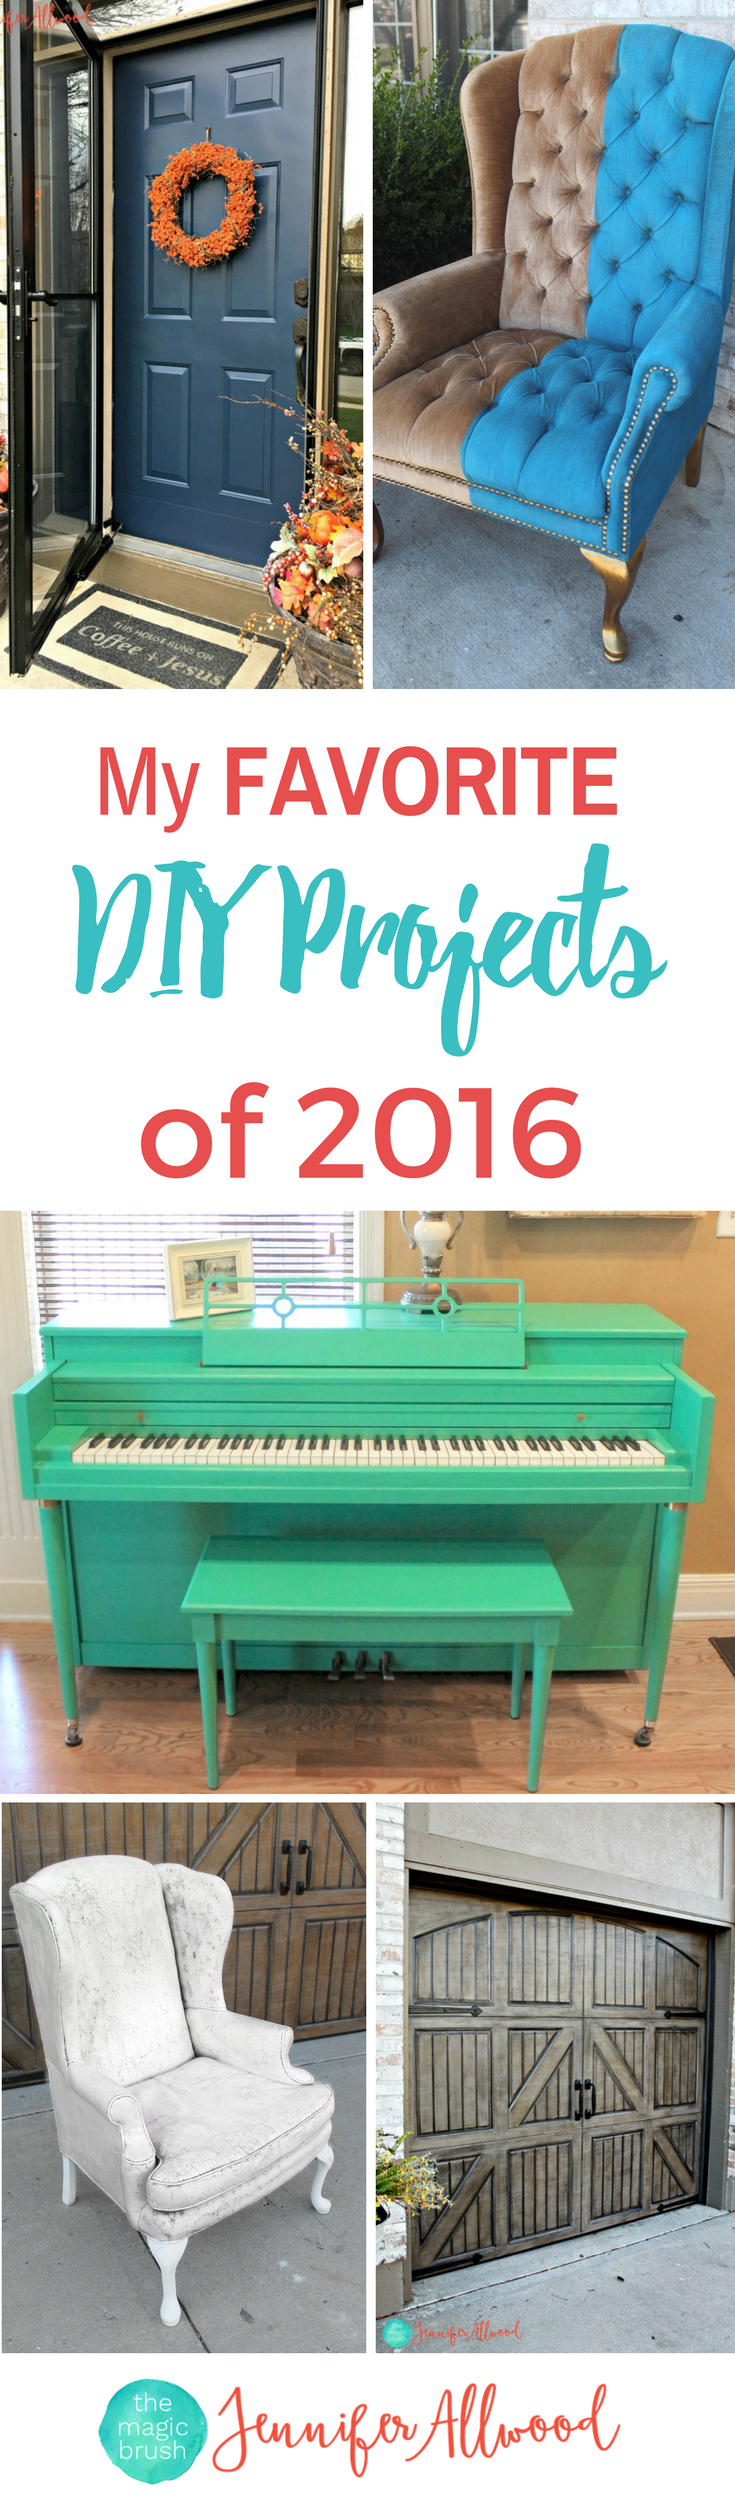 Favorite Best DIY Projects of 2016 | Magic Brush | Best Painting Projects | Painted DIY Home Decor Ideas | Top DIY Decorating Ideas